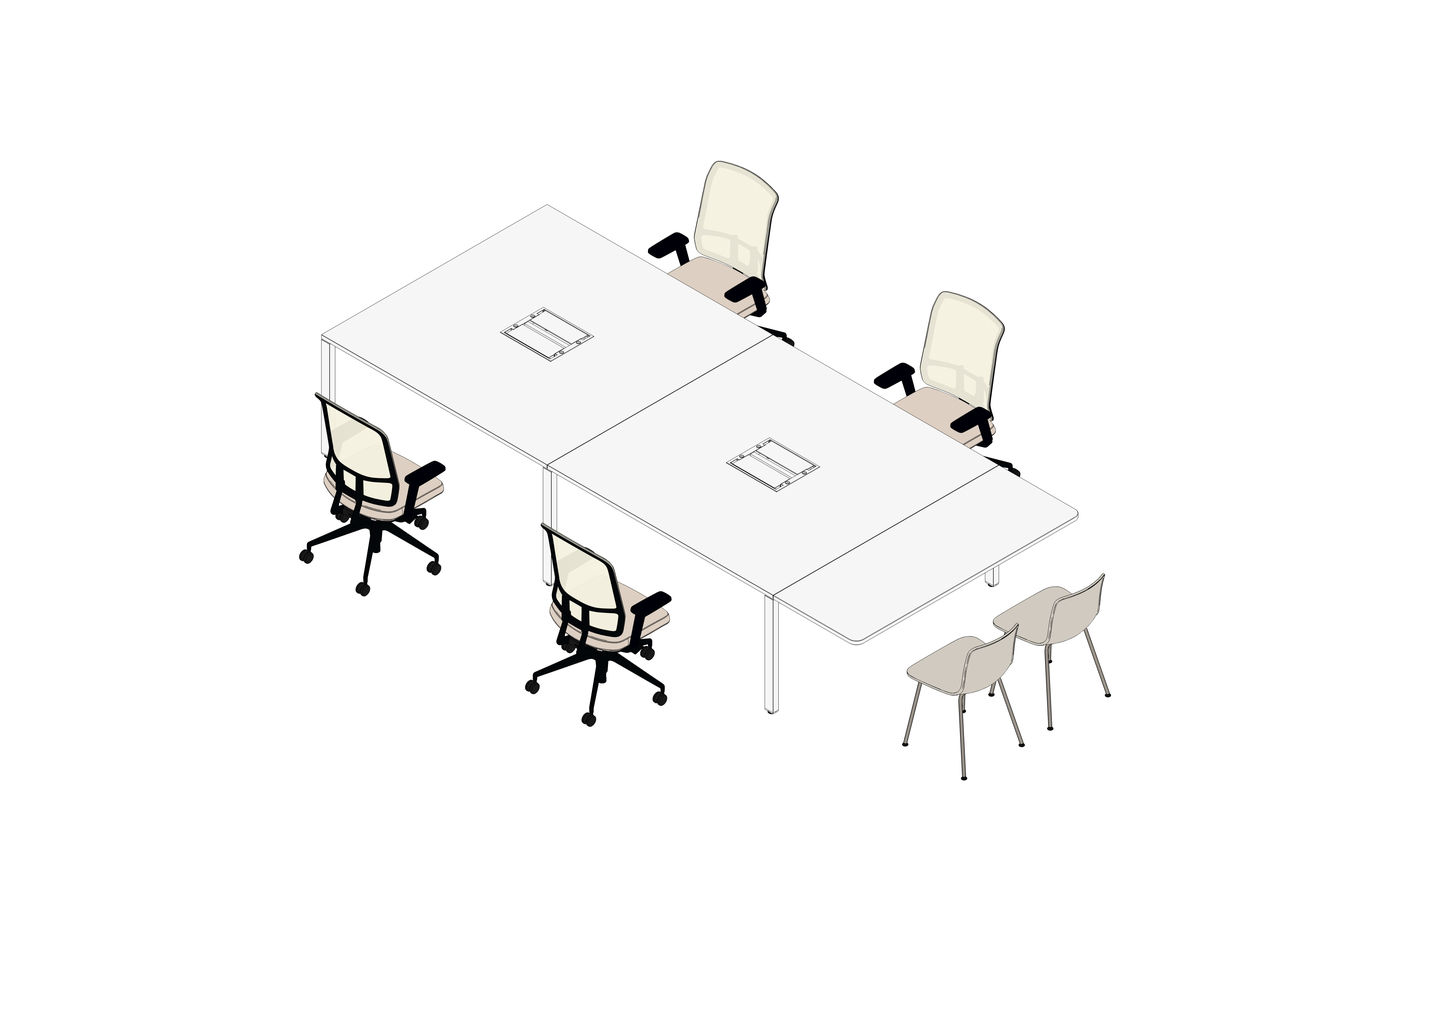 WorKit 360 x 160 with Additional Tabletop 160 x 60, AM Chair, HAL Tube